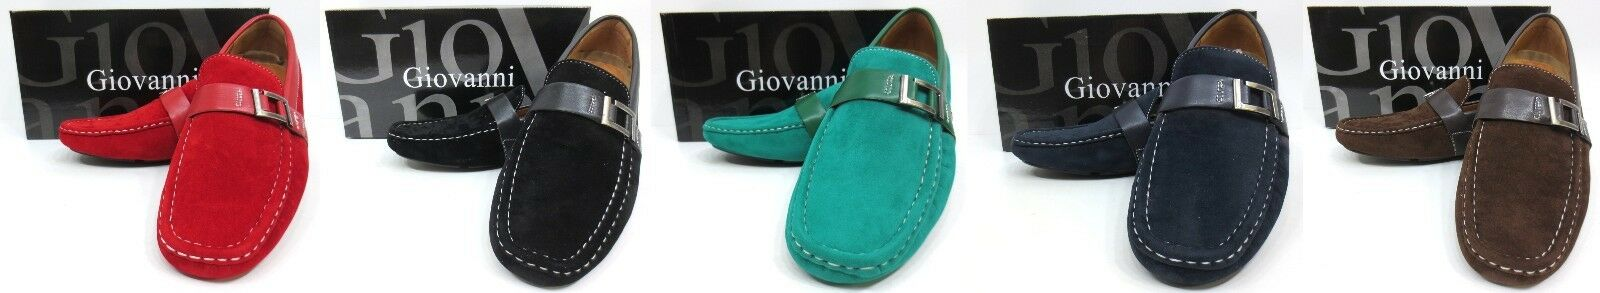 Men's GIOVANNI suede loafers slip on shoes brown black red navy green brown shoes style 9310 303ee6